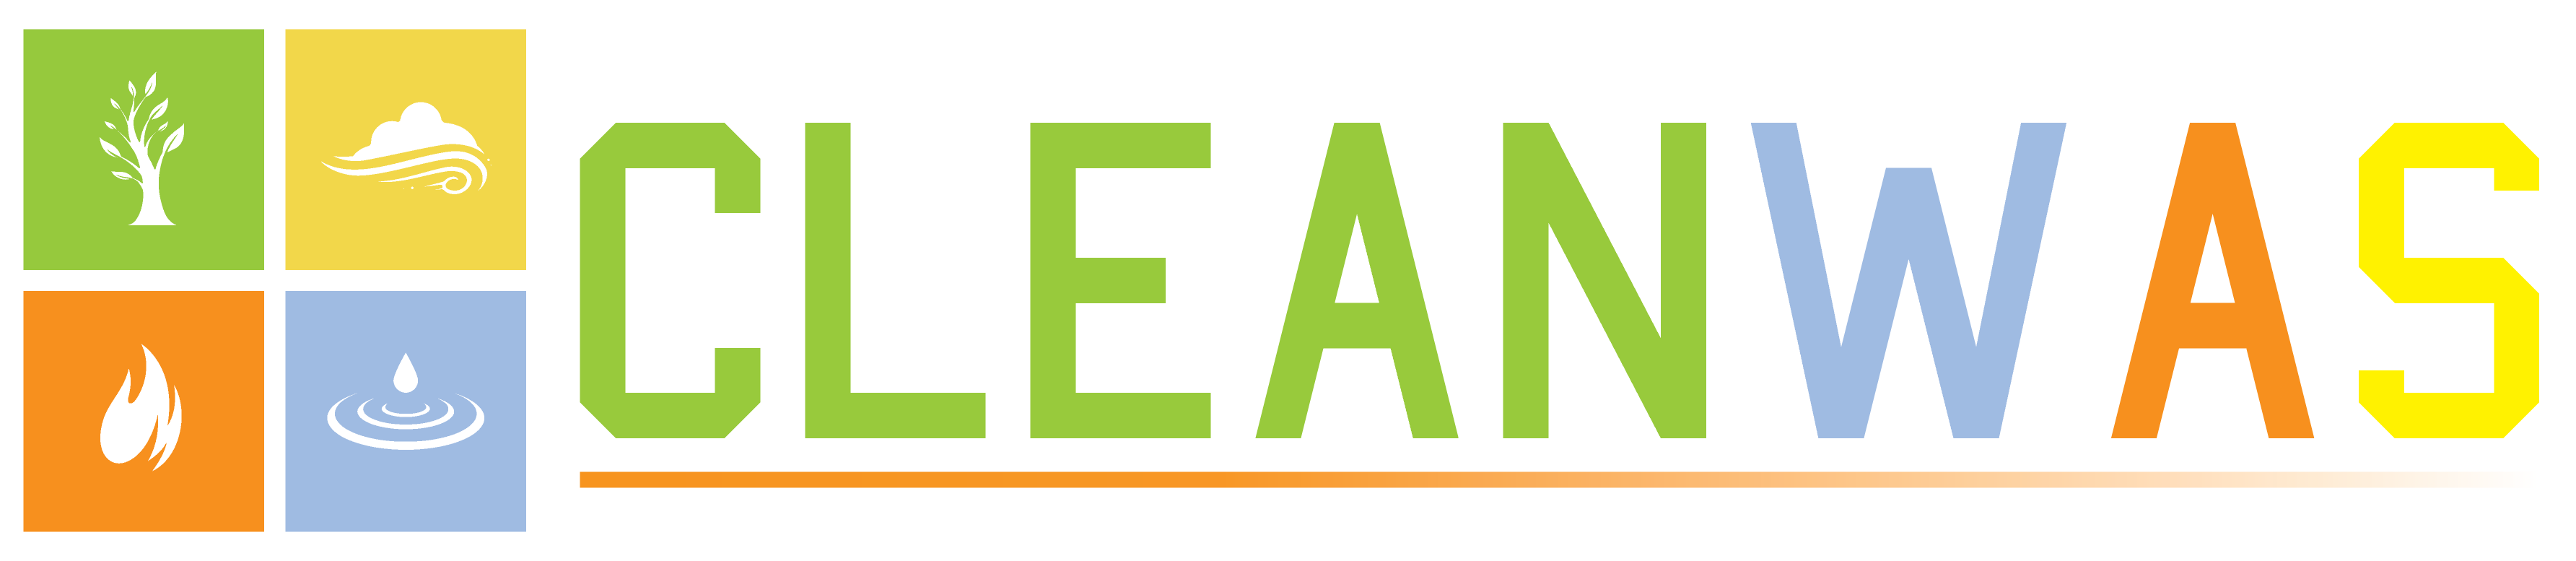 Cleanwas